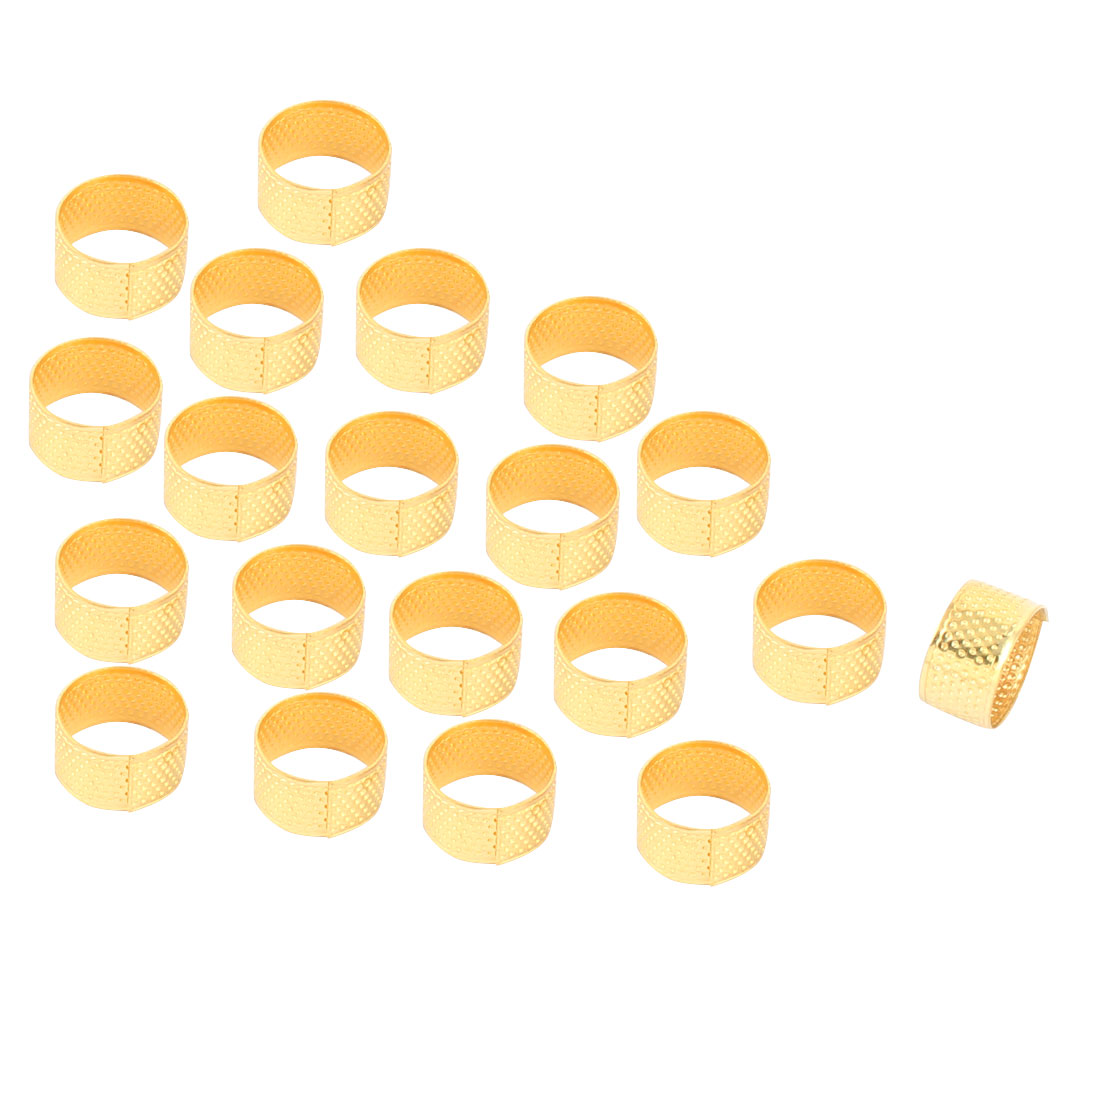 Metal Reeded Sewing Quilting Finger Protective Thimble Ring Gold Tone 20pcs